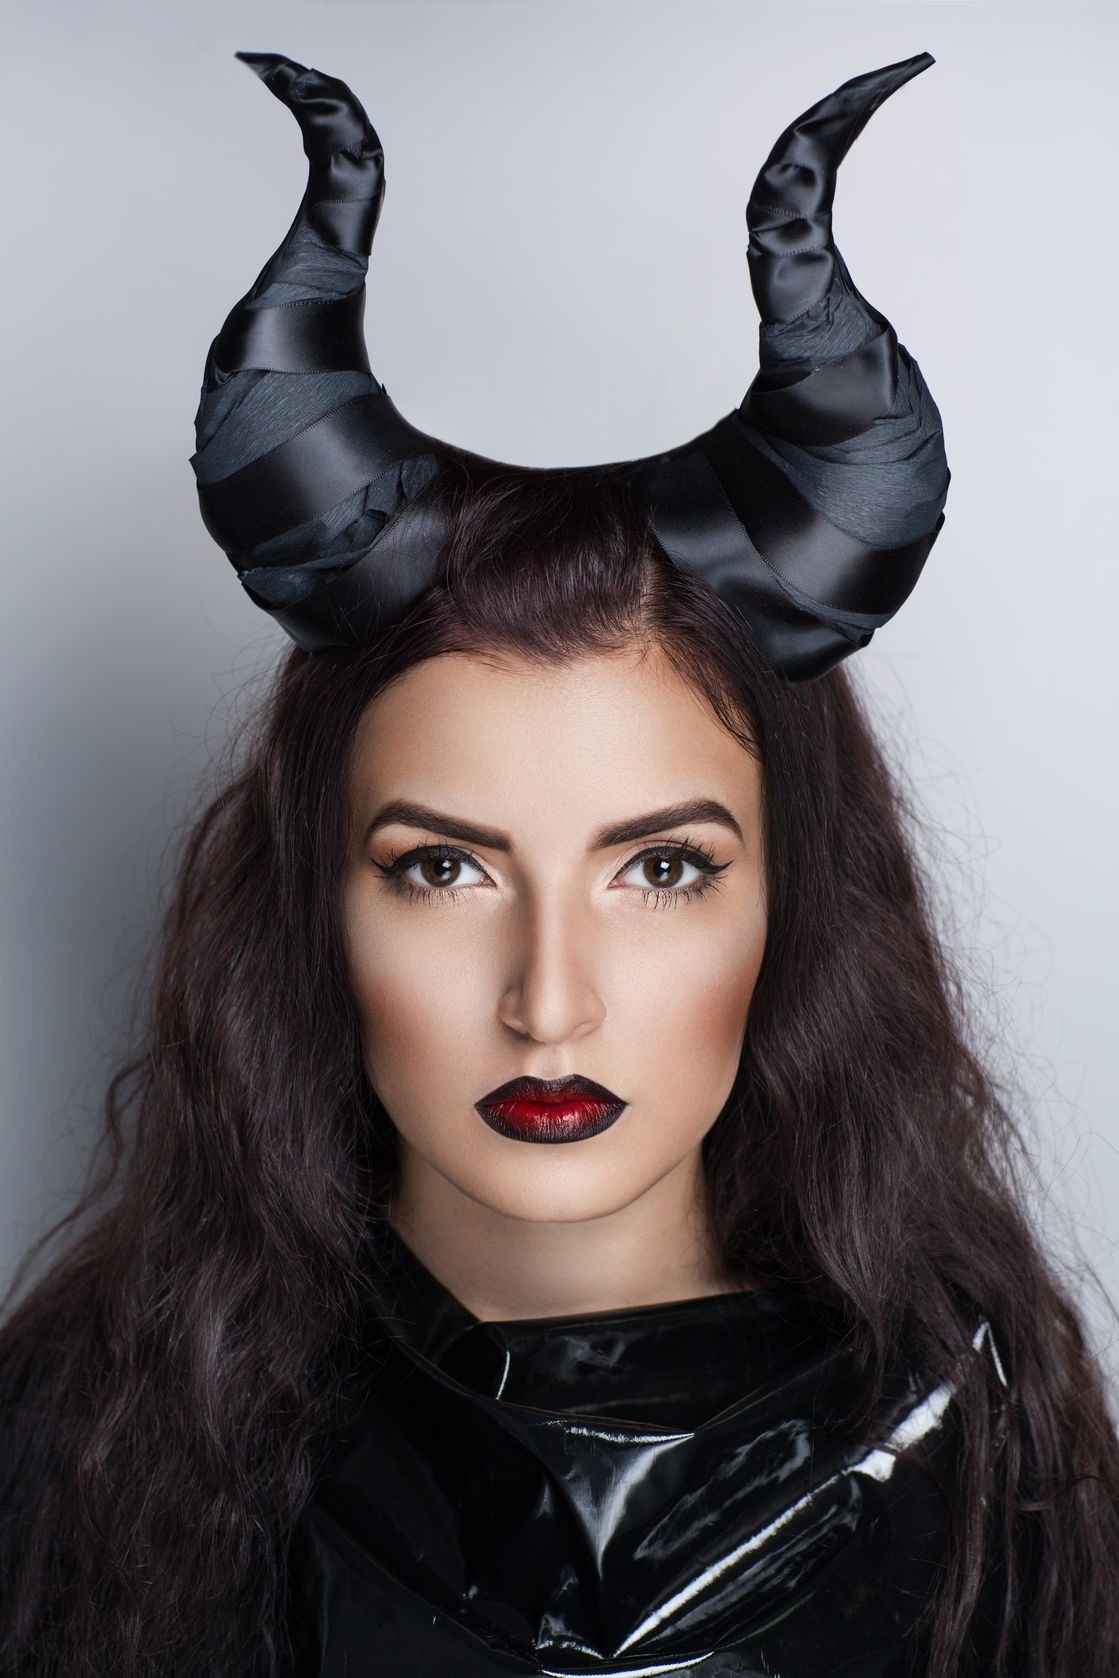 model wearing perfect makeup beautiful face, tanned soft skin dark red lips, long combed hair, huge halloween devil horns decorates her head